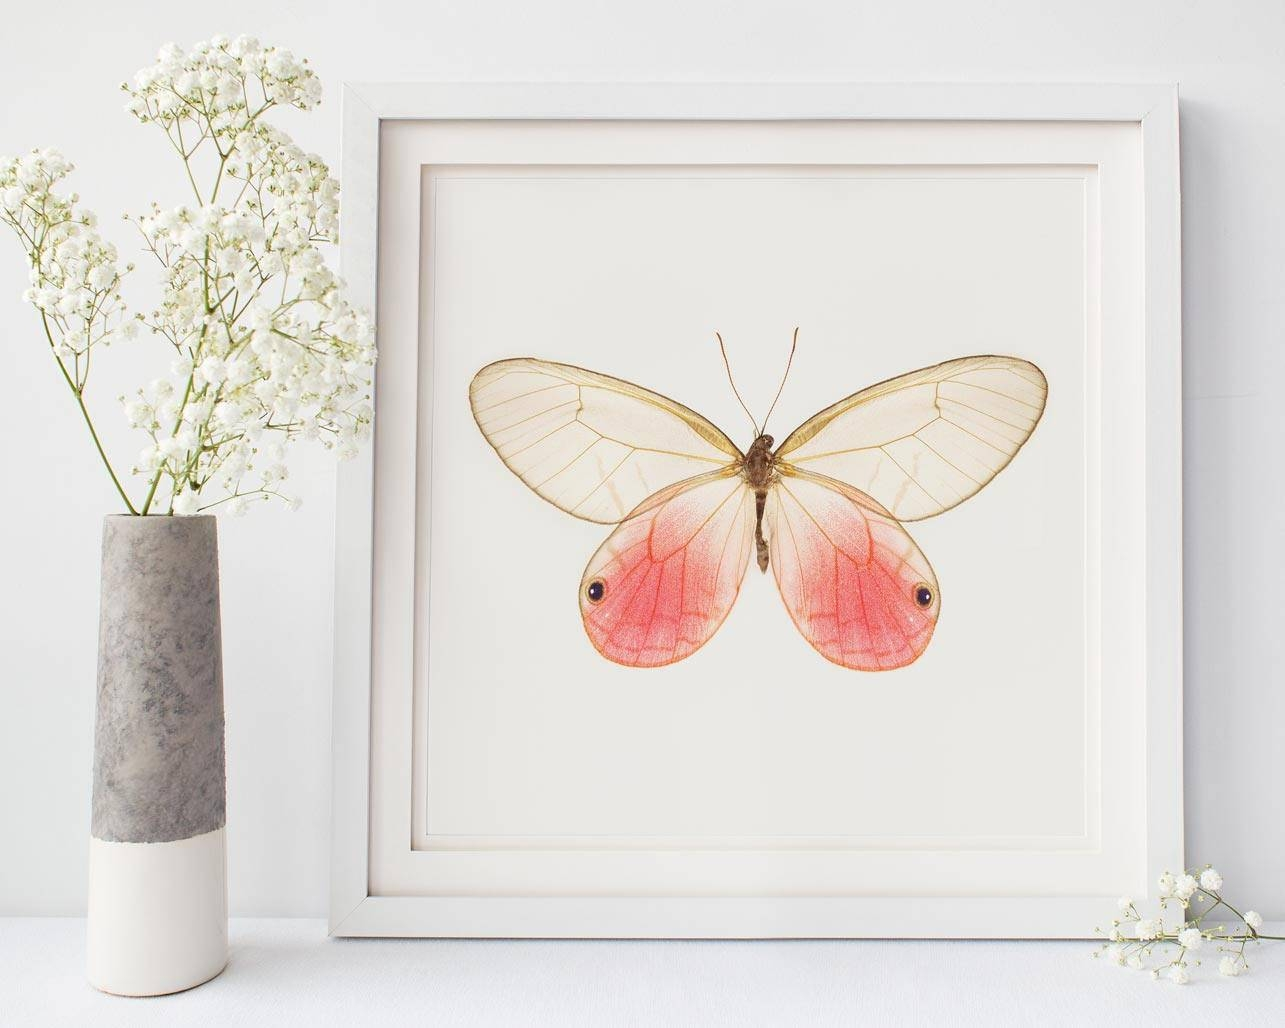 Pink Butterfly Photo Insect Art Butterfly Room Decor Pertaining To Newest Insect Wall Art (View 18 of 30)